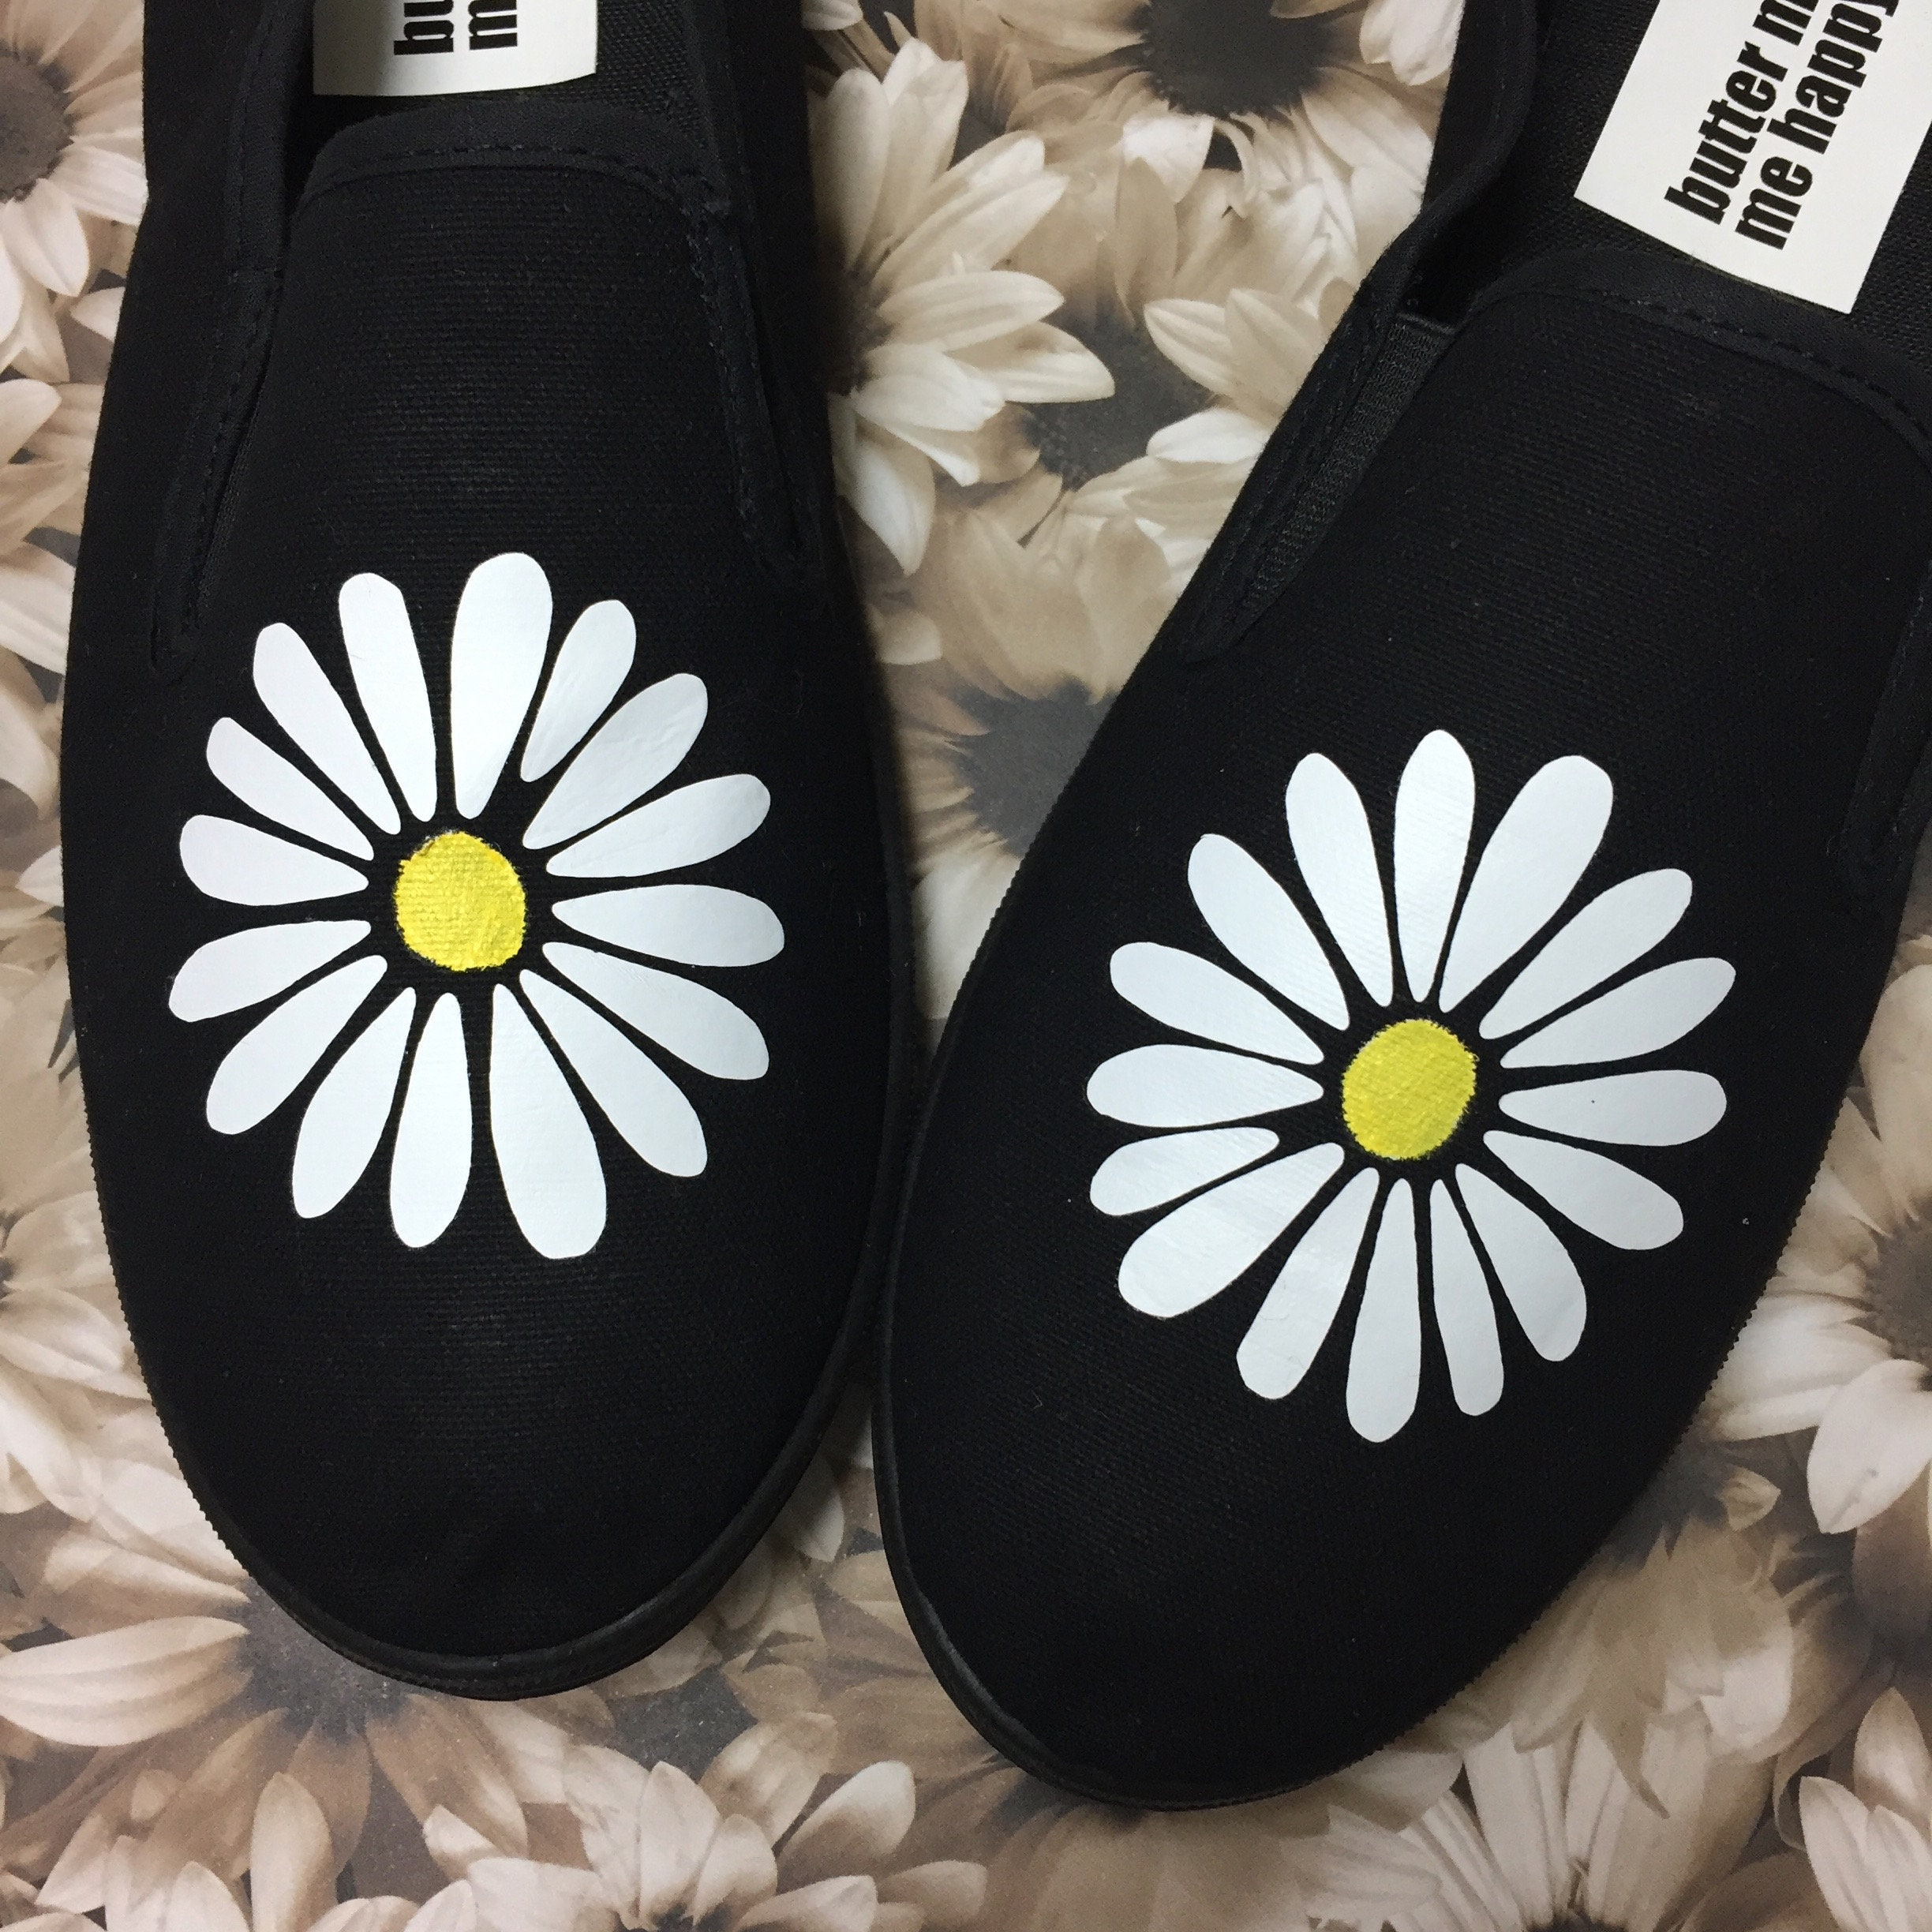 daisy chaussures [brillant chaussures] chaussures] chaussures] hippie de chaussures. pompes. ed126e